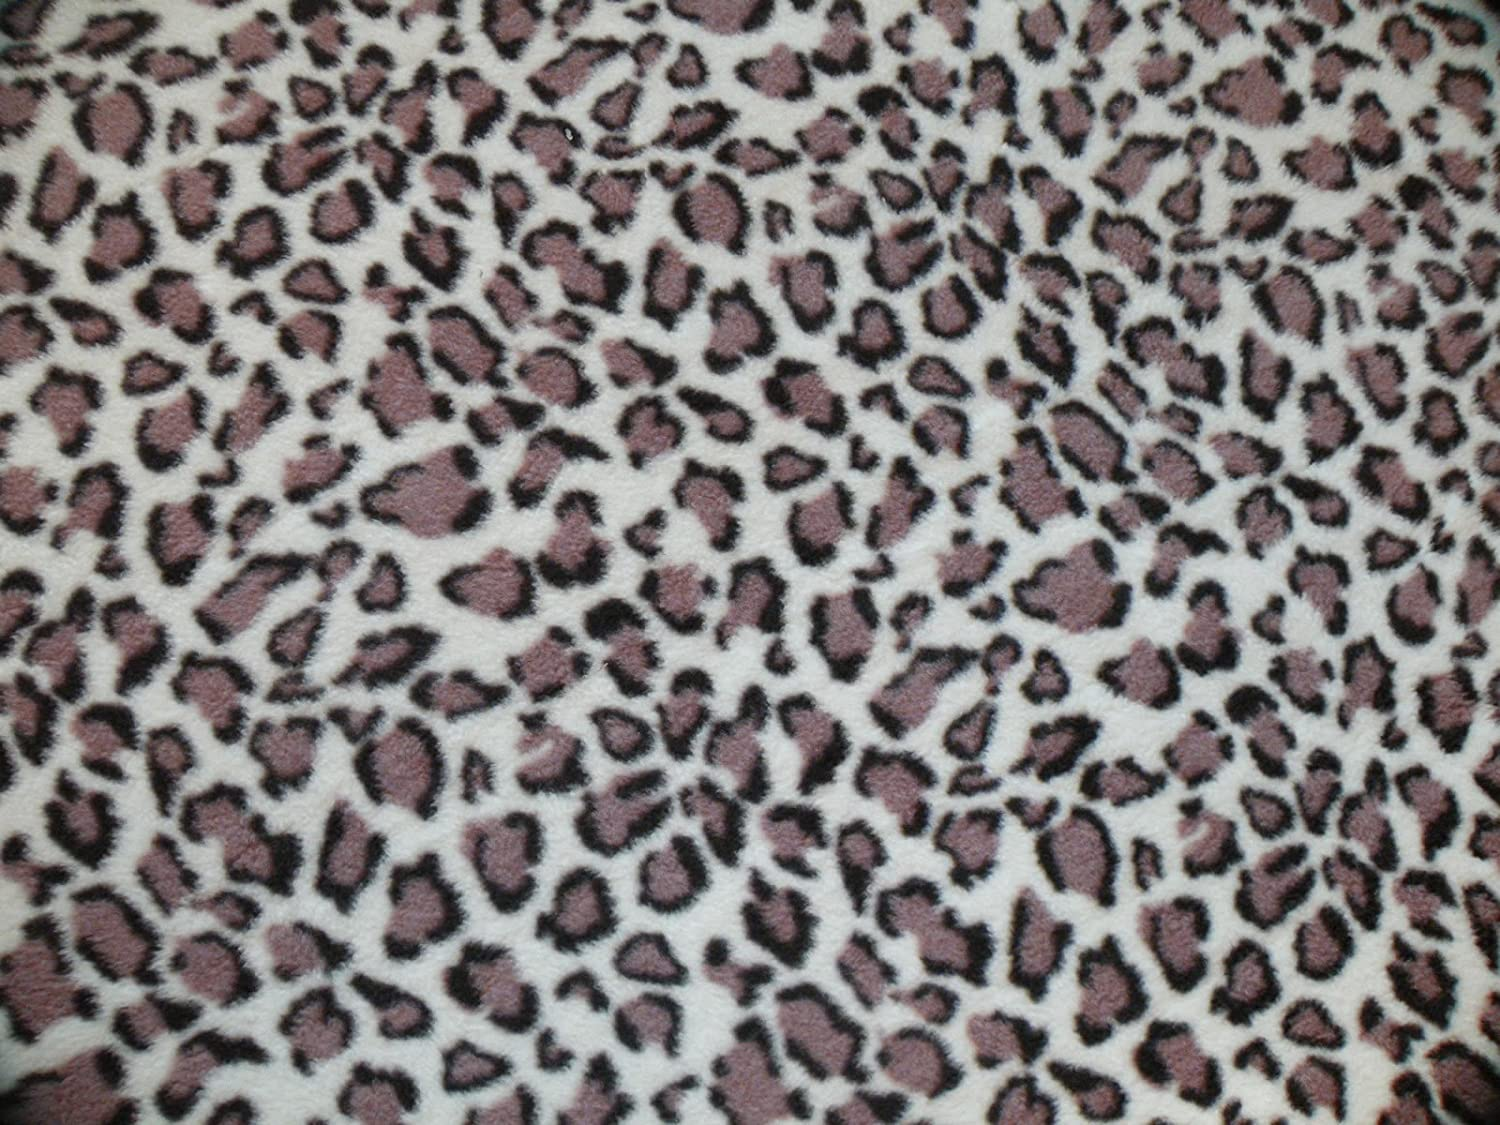 Bonnie Creations Pet Blanket, Polar Fleece, Snow Leopard Print (95 x 70 cm : 38 x 28 inches)